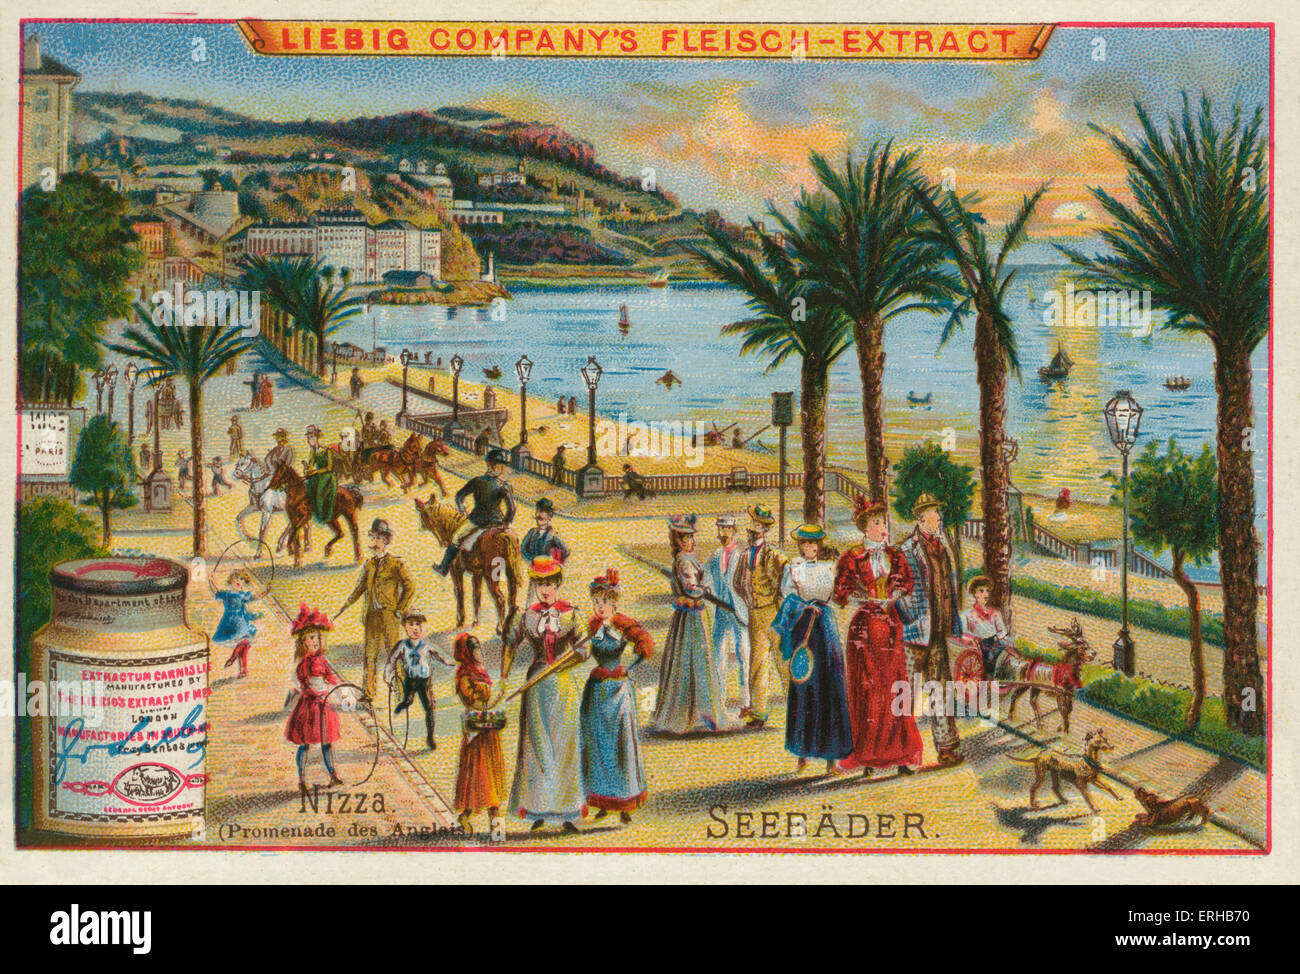 The Promenades des Anglais in Nice, Southern France. Seebader series, Liebig card, 1895 (3 of 6). - Stock Image